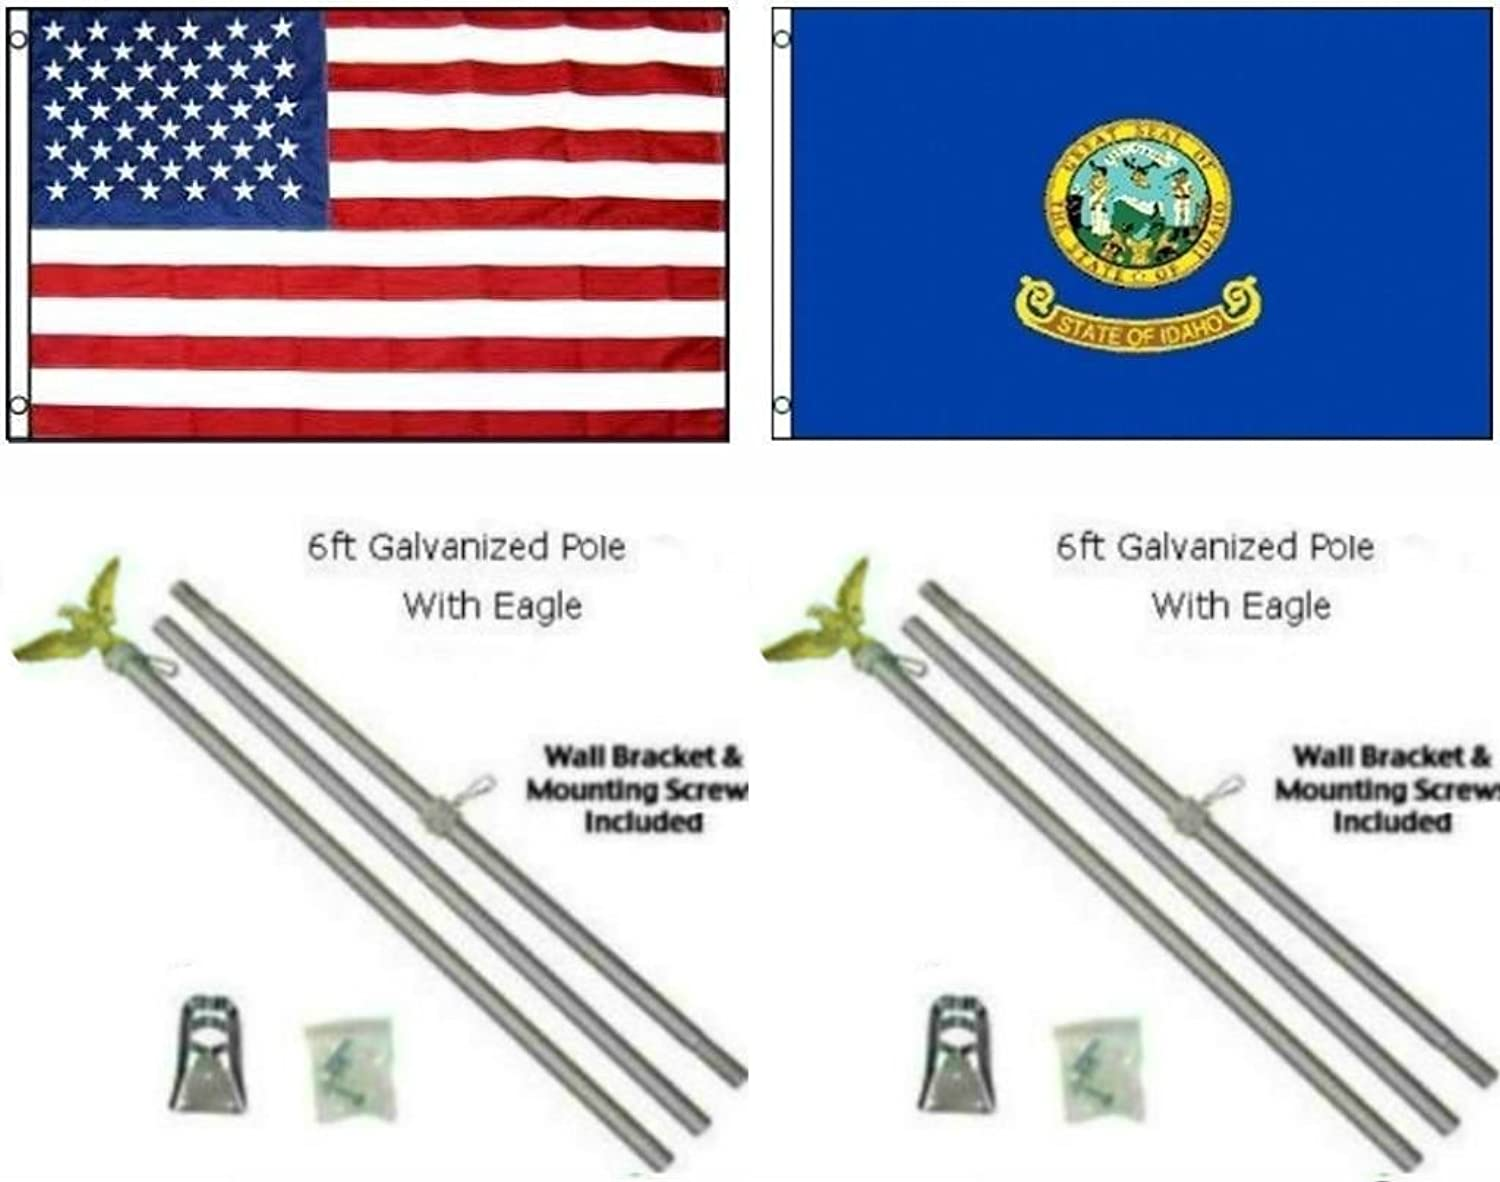 AES 3x5 3'x5' USA American w State of Idaho Flag w Two 6' Galvanized Flagpole Pole Kits Eagle Topper